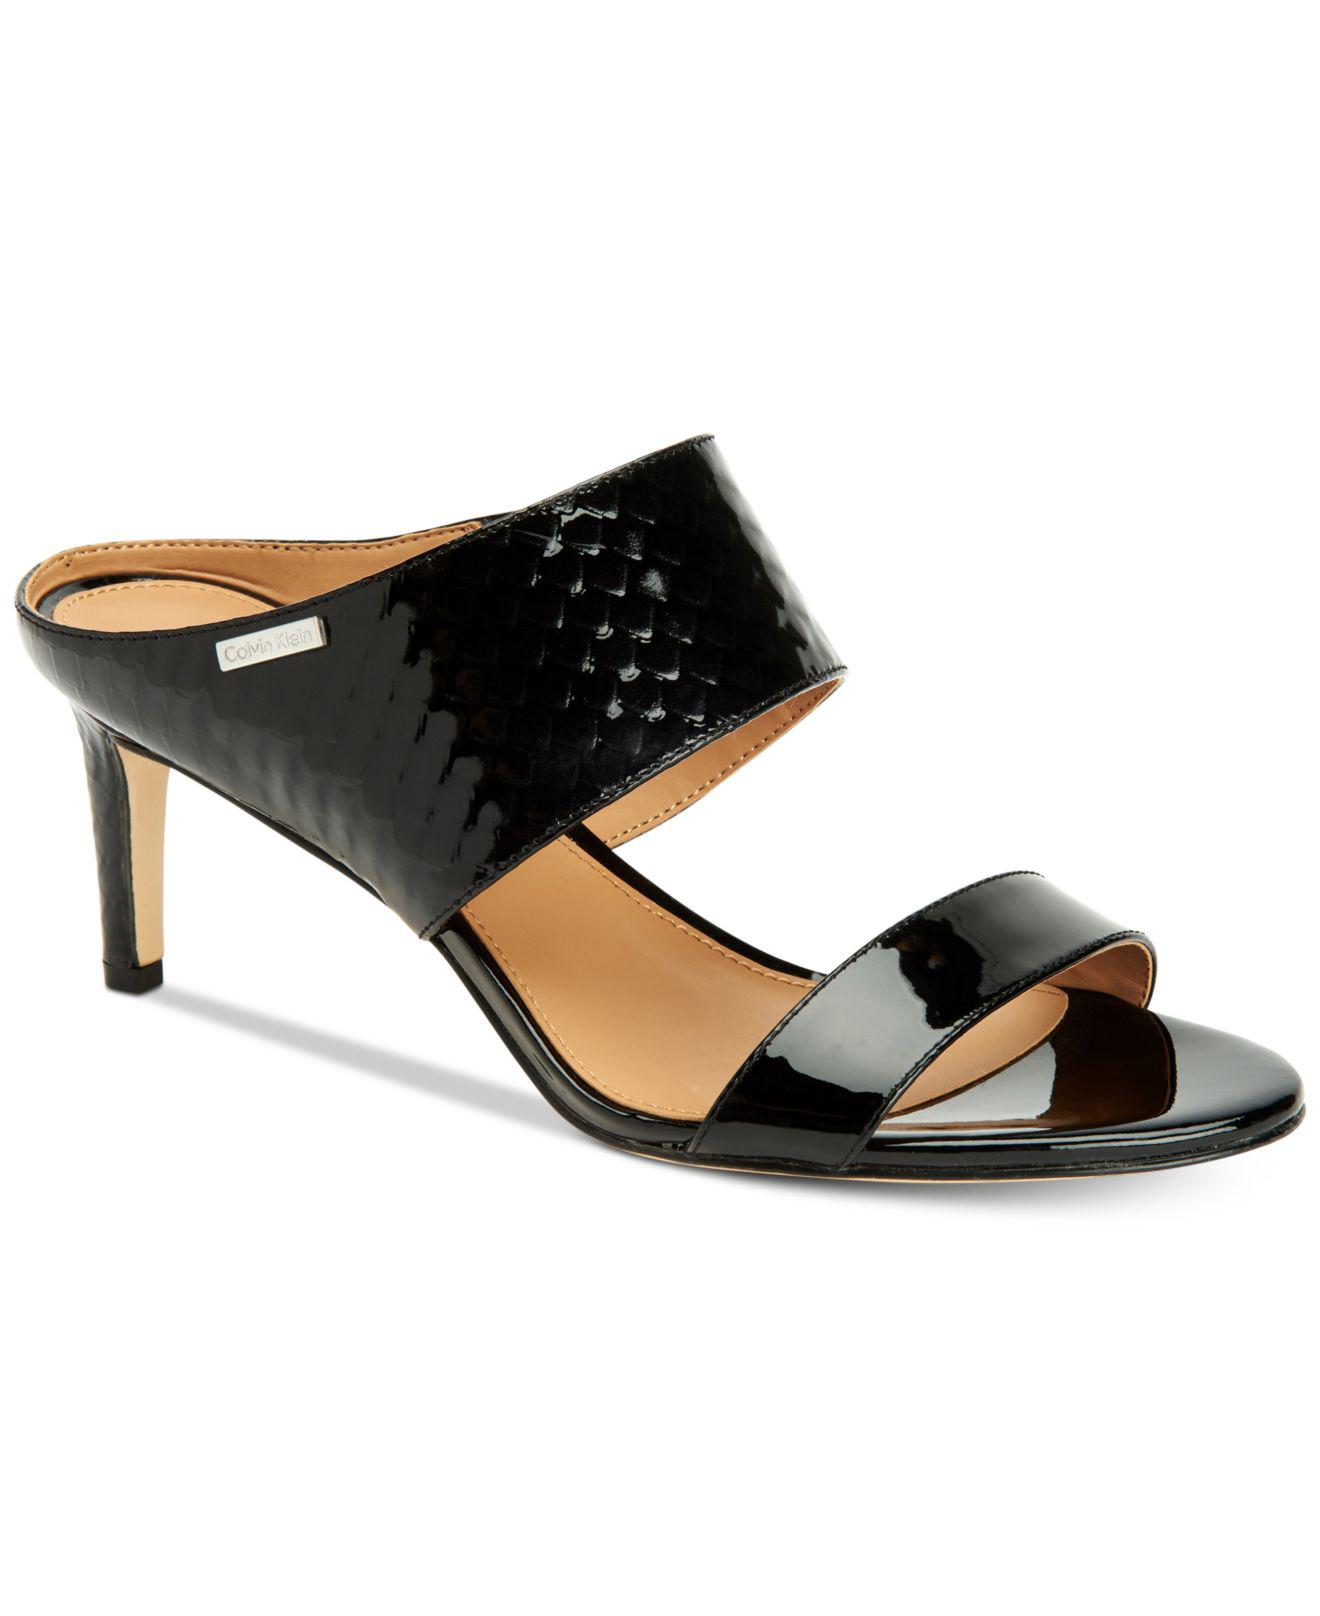 b49d2a75b40 Lyst - Calvin Klein Women s Cecily Wide-strap Sandals in Black ...